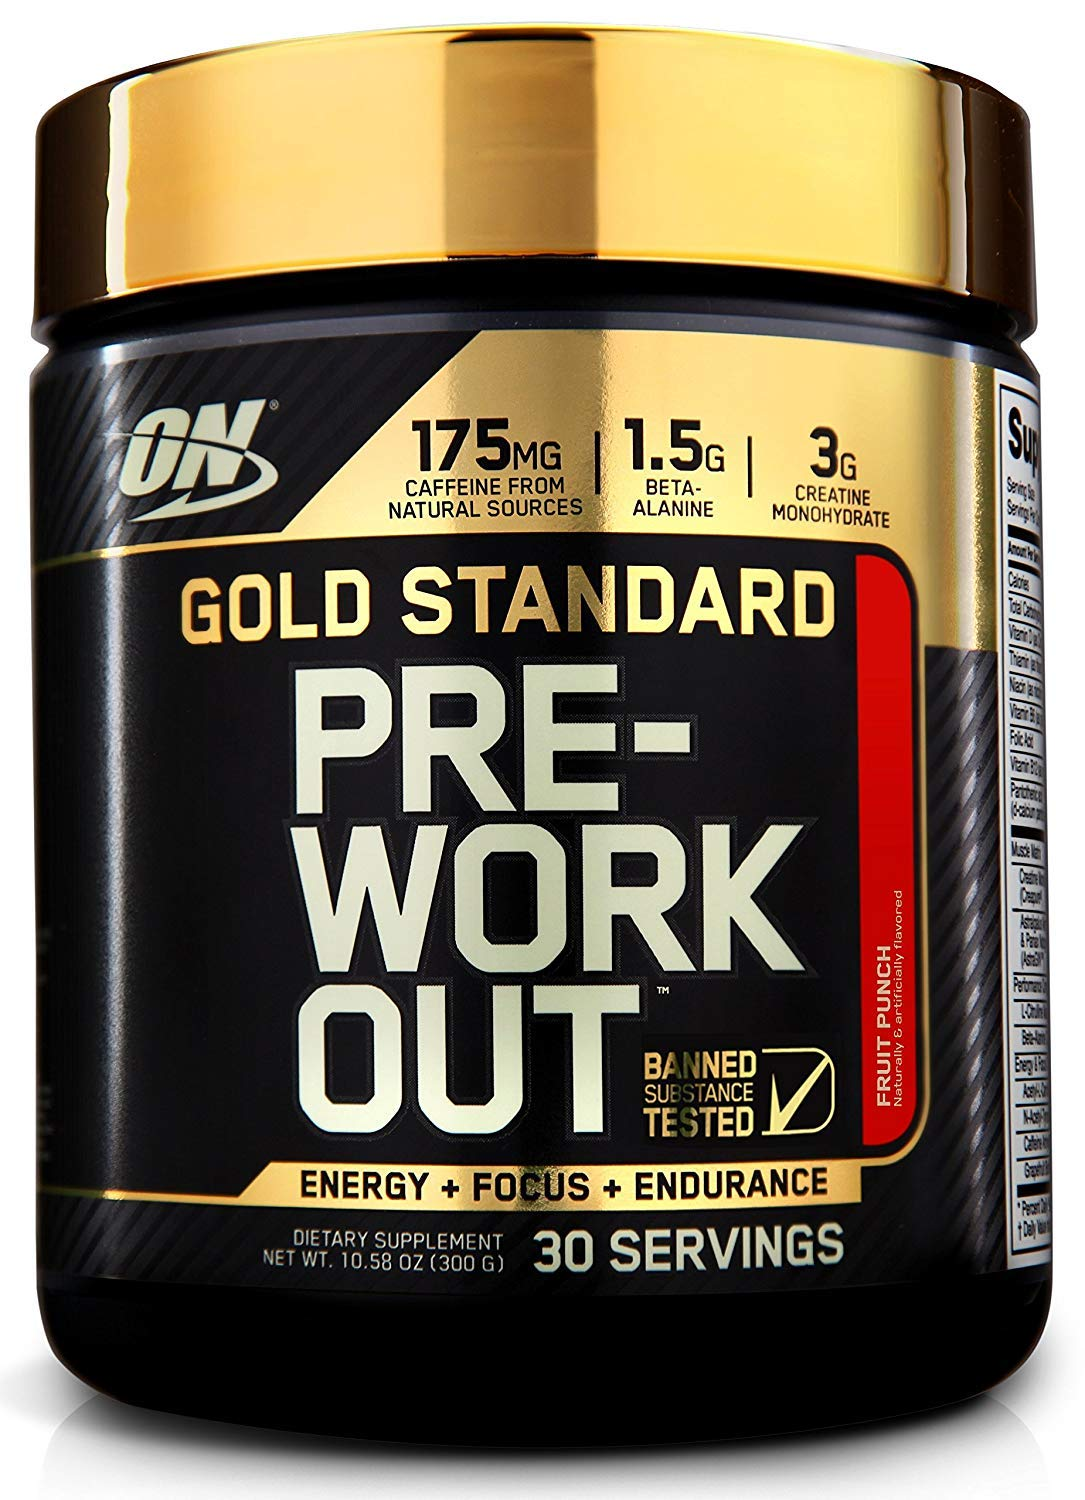 OPTIMUM NUTRITION Gold Standard Pre-Workout with Creatine, Beta-Alanine, and Caffeine for Energy, Keto Friendly, Fruit Punch, 30 Servings by Optimum Nutrition